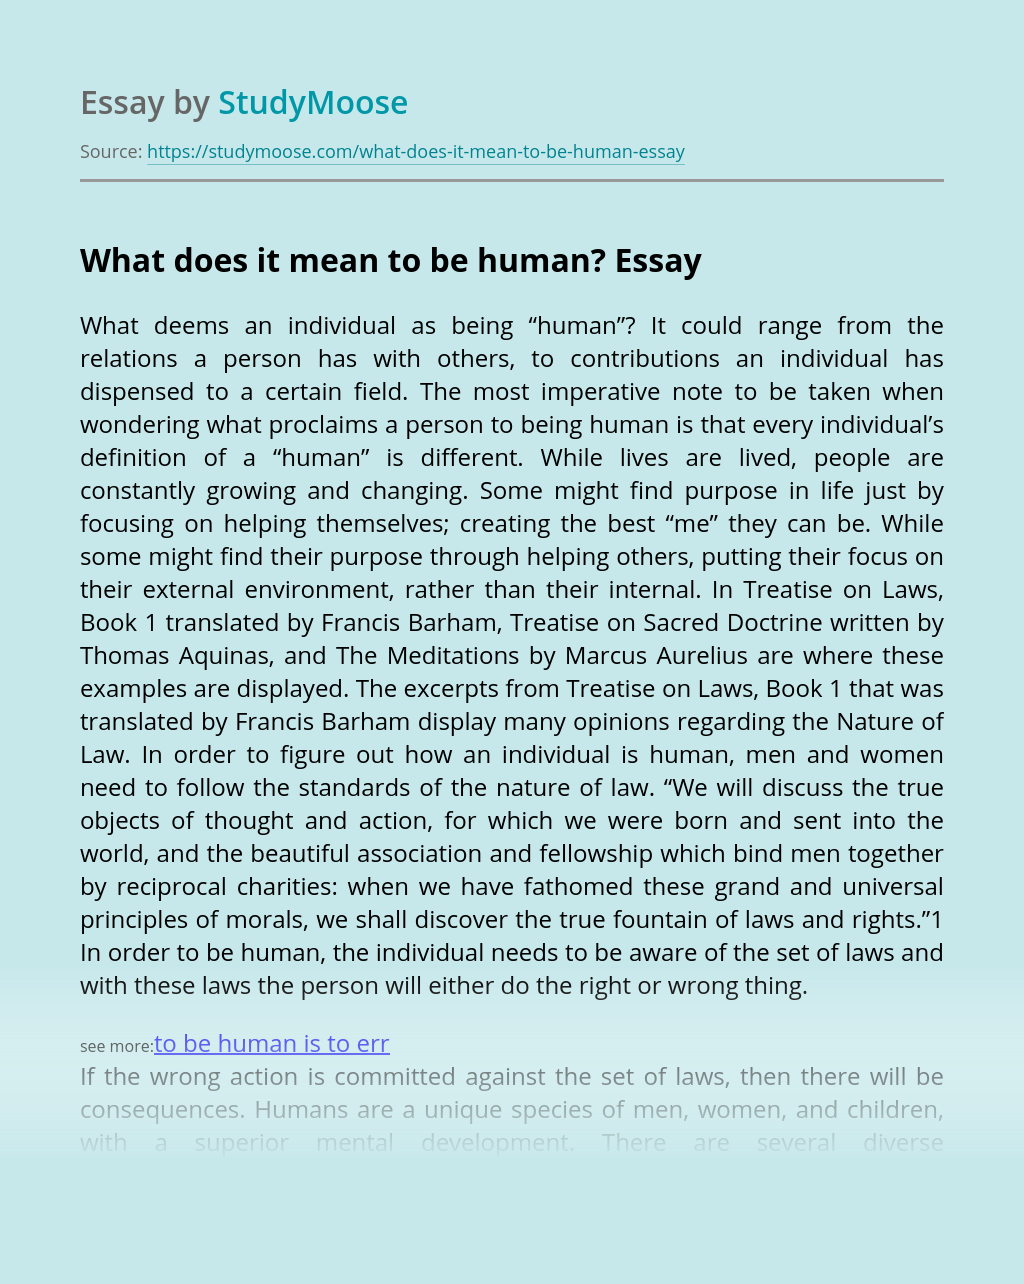 What does it mean to be human?